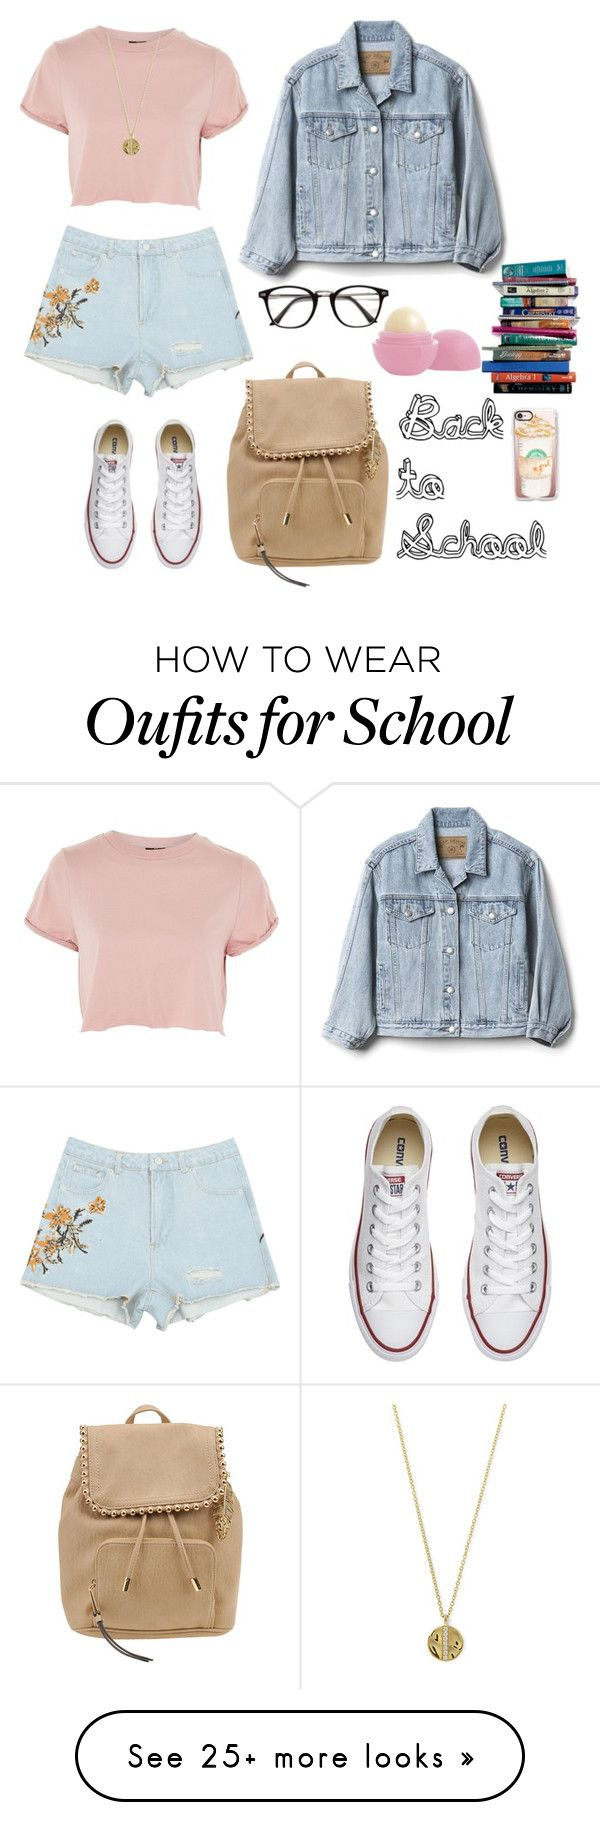 """Back to School"" by danae-18 on Polyvore featuring Topshop, Converse, Gap, Jessica Simpson, Senso, Casetify, 7 For All Mankind and Eos"